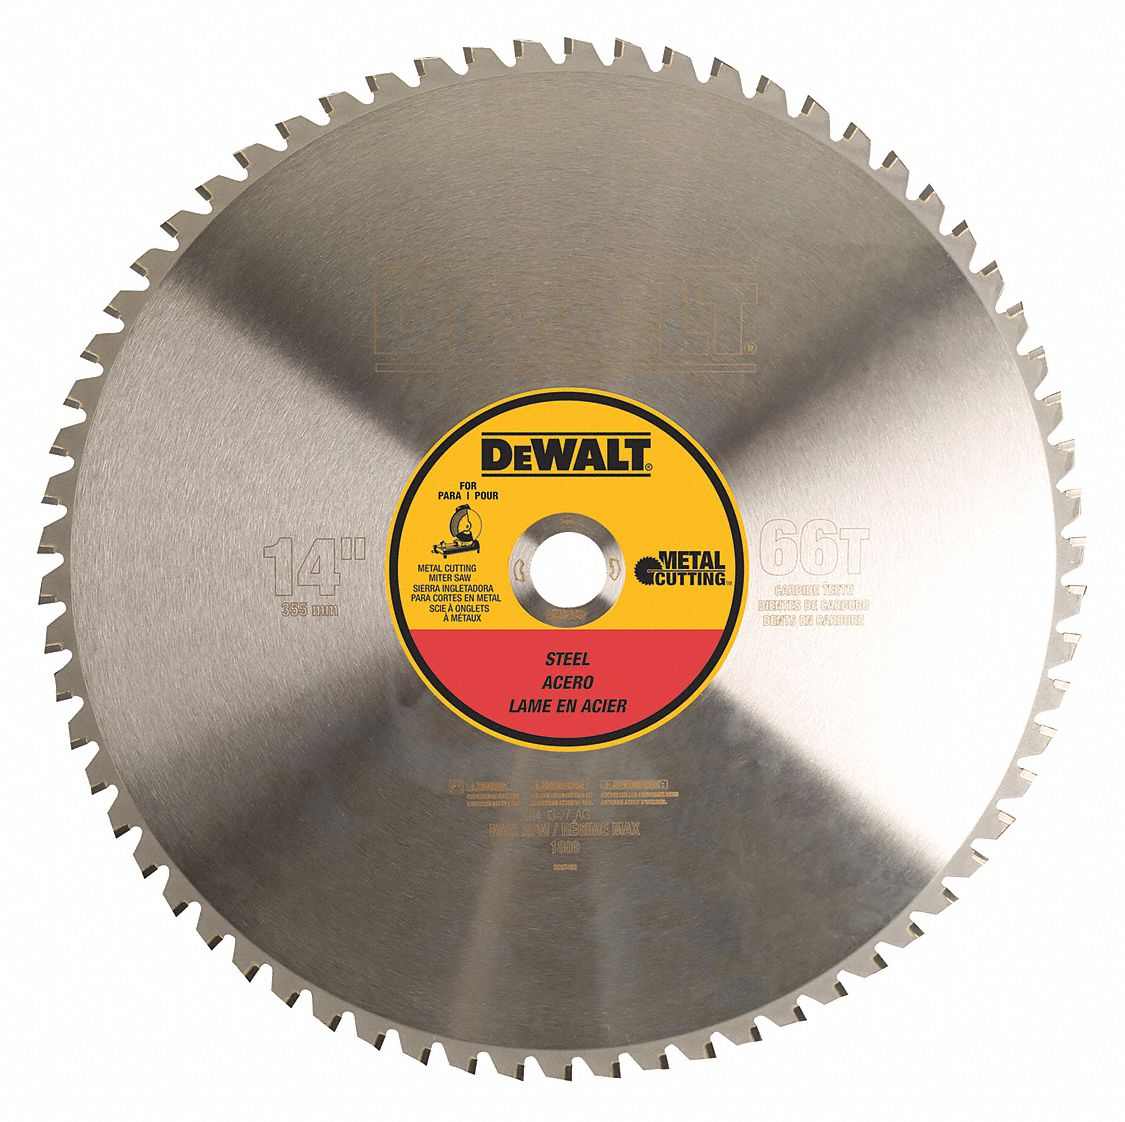 Dewalt 14 Quot Carbide Metal Cutting Circular Saw Blade